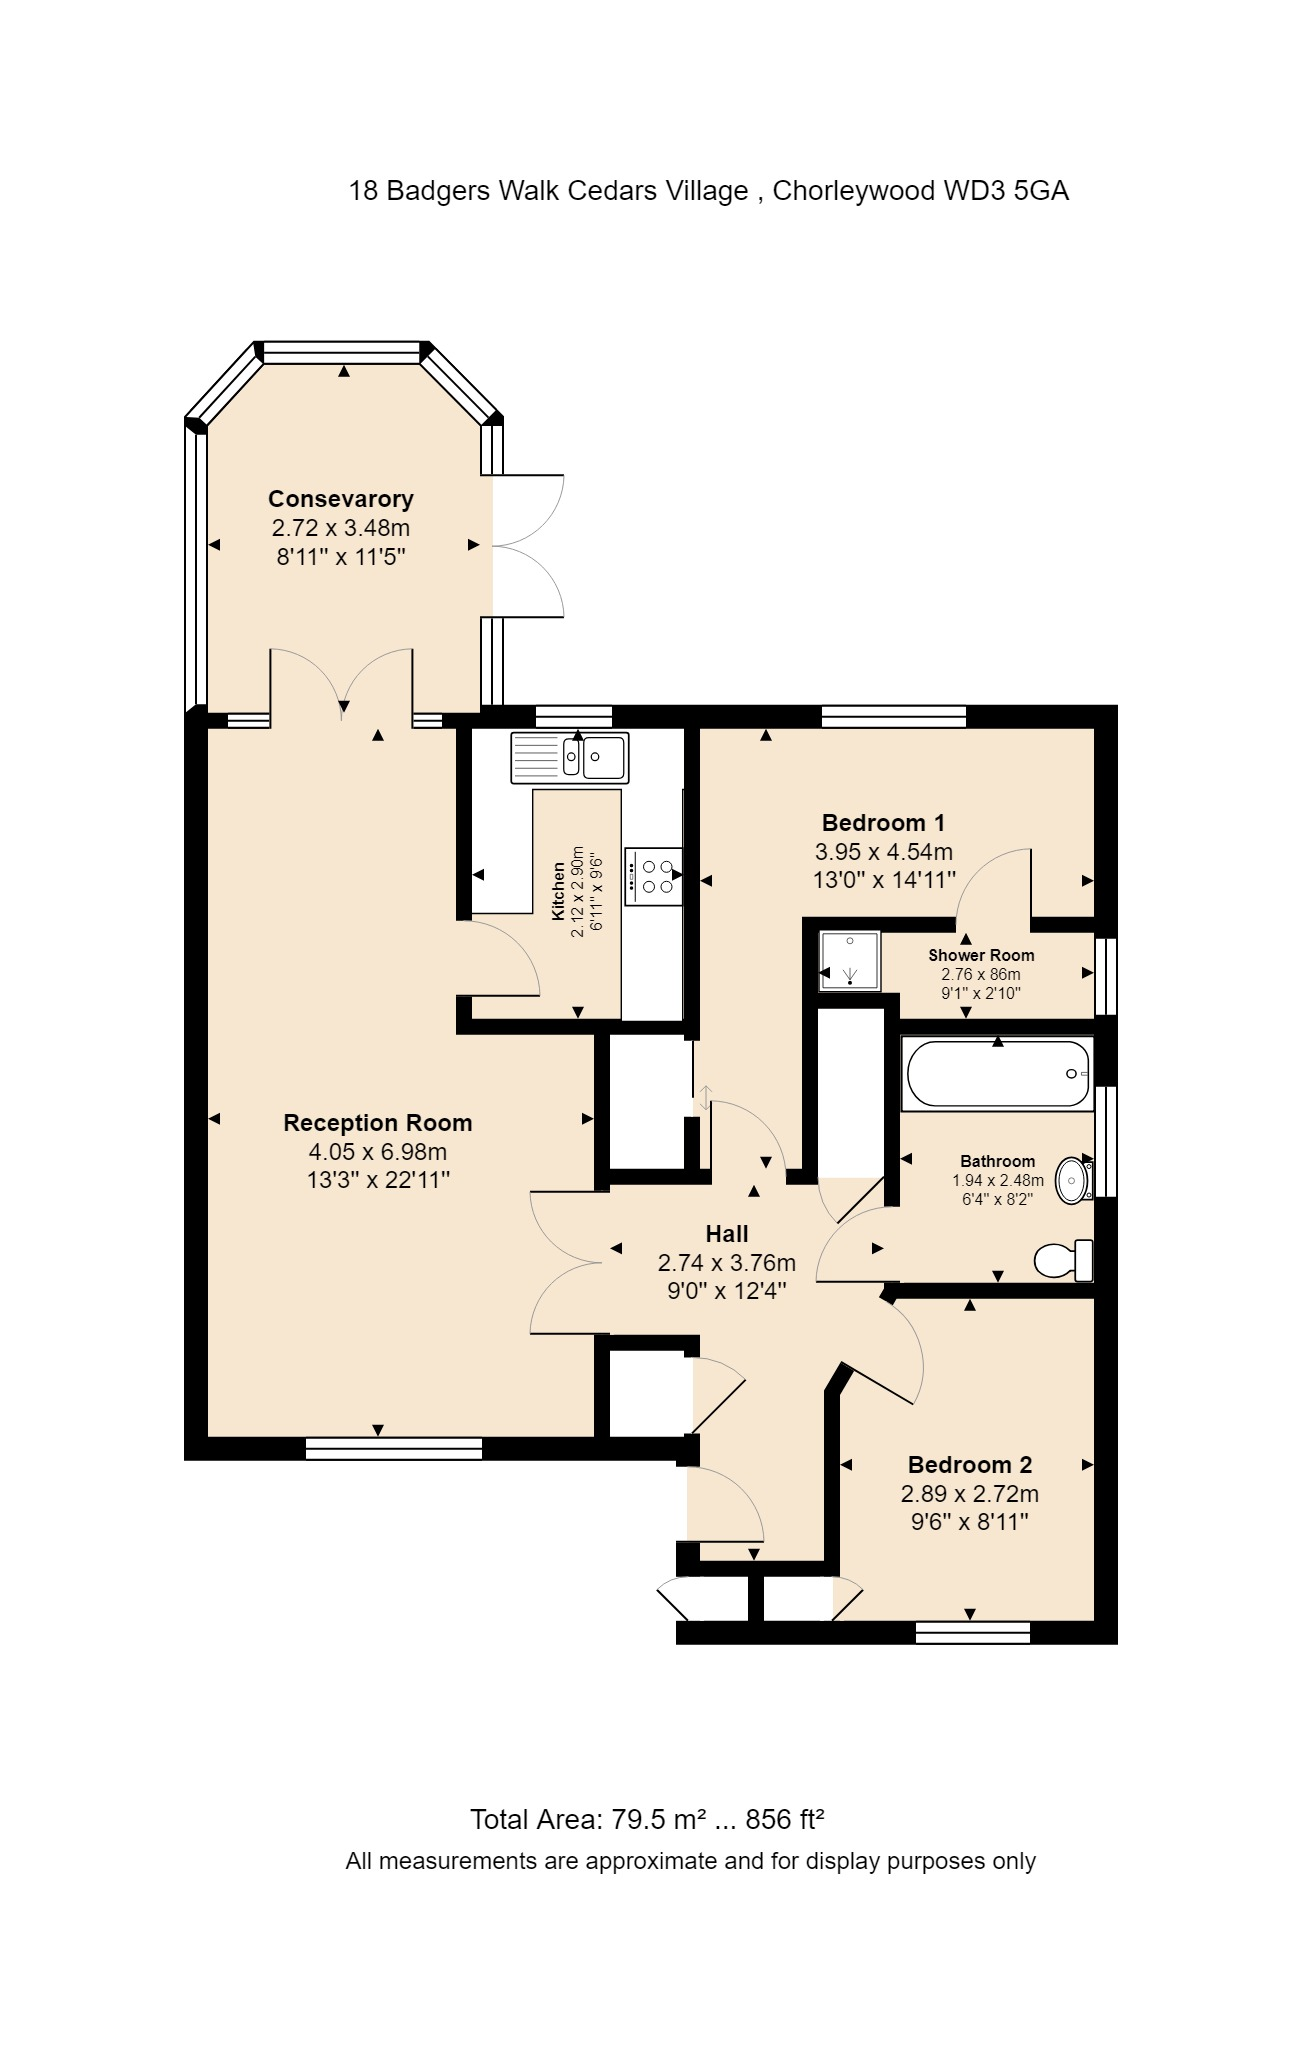 18 Badgers Walk Floorplan